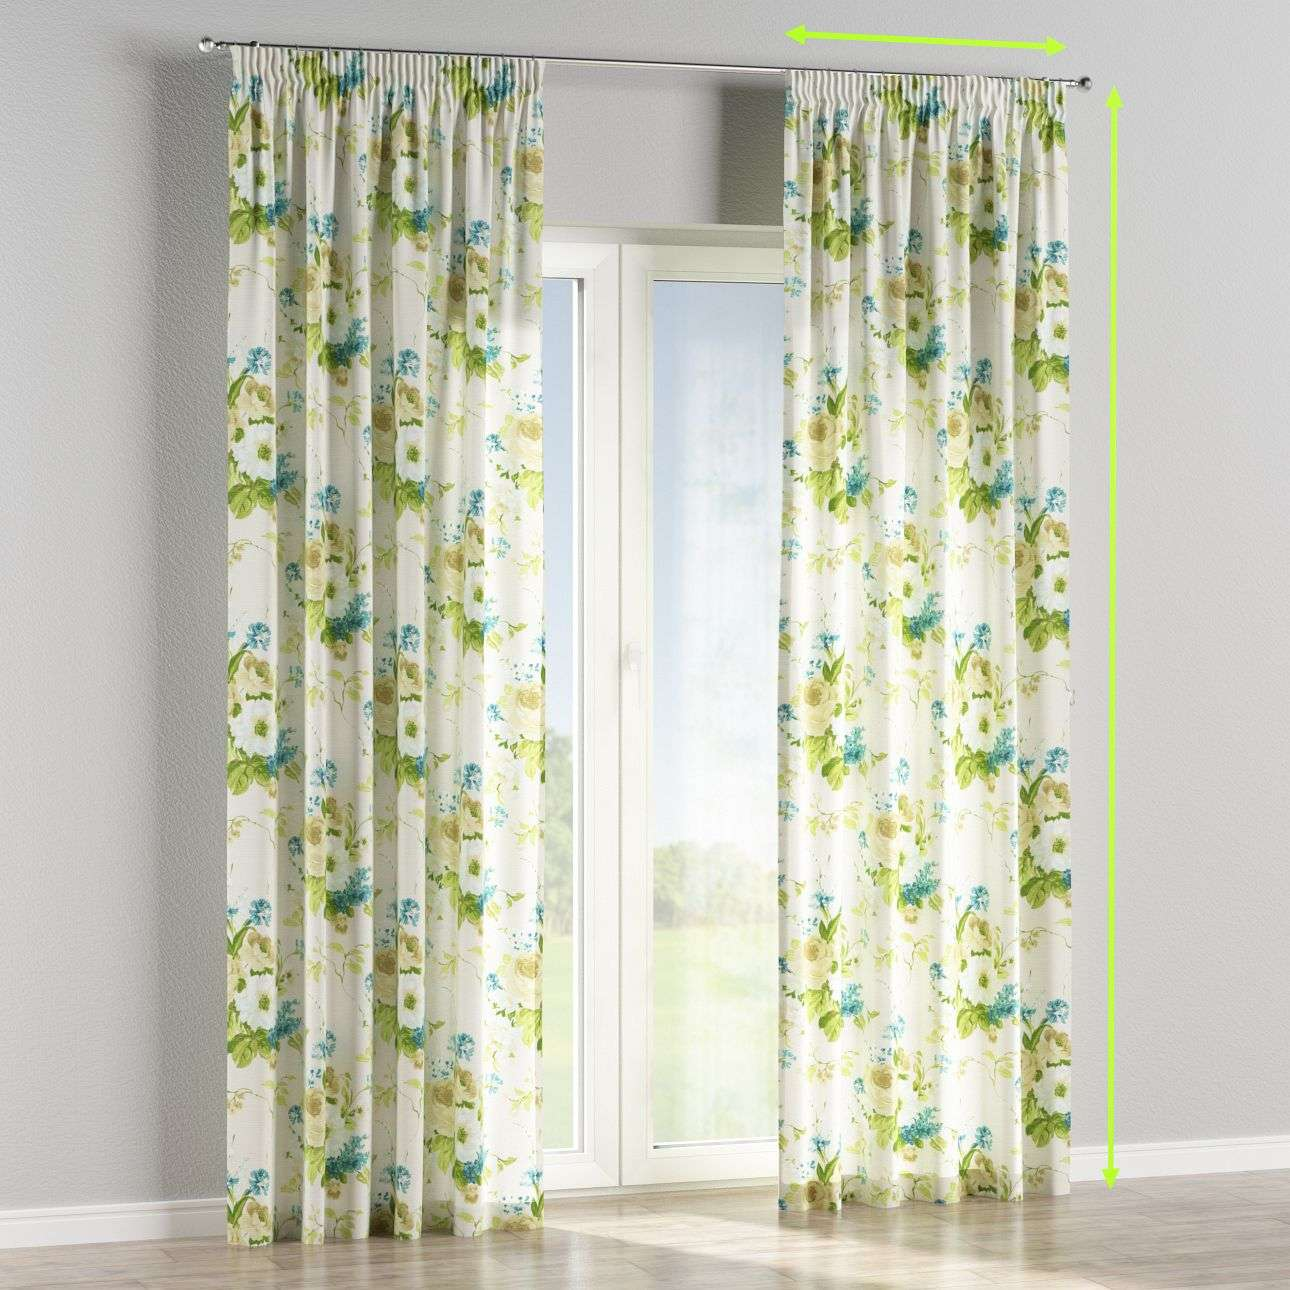 Pencil pleat curtains in collection Mirella, fabric: 141-15